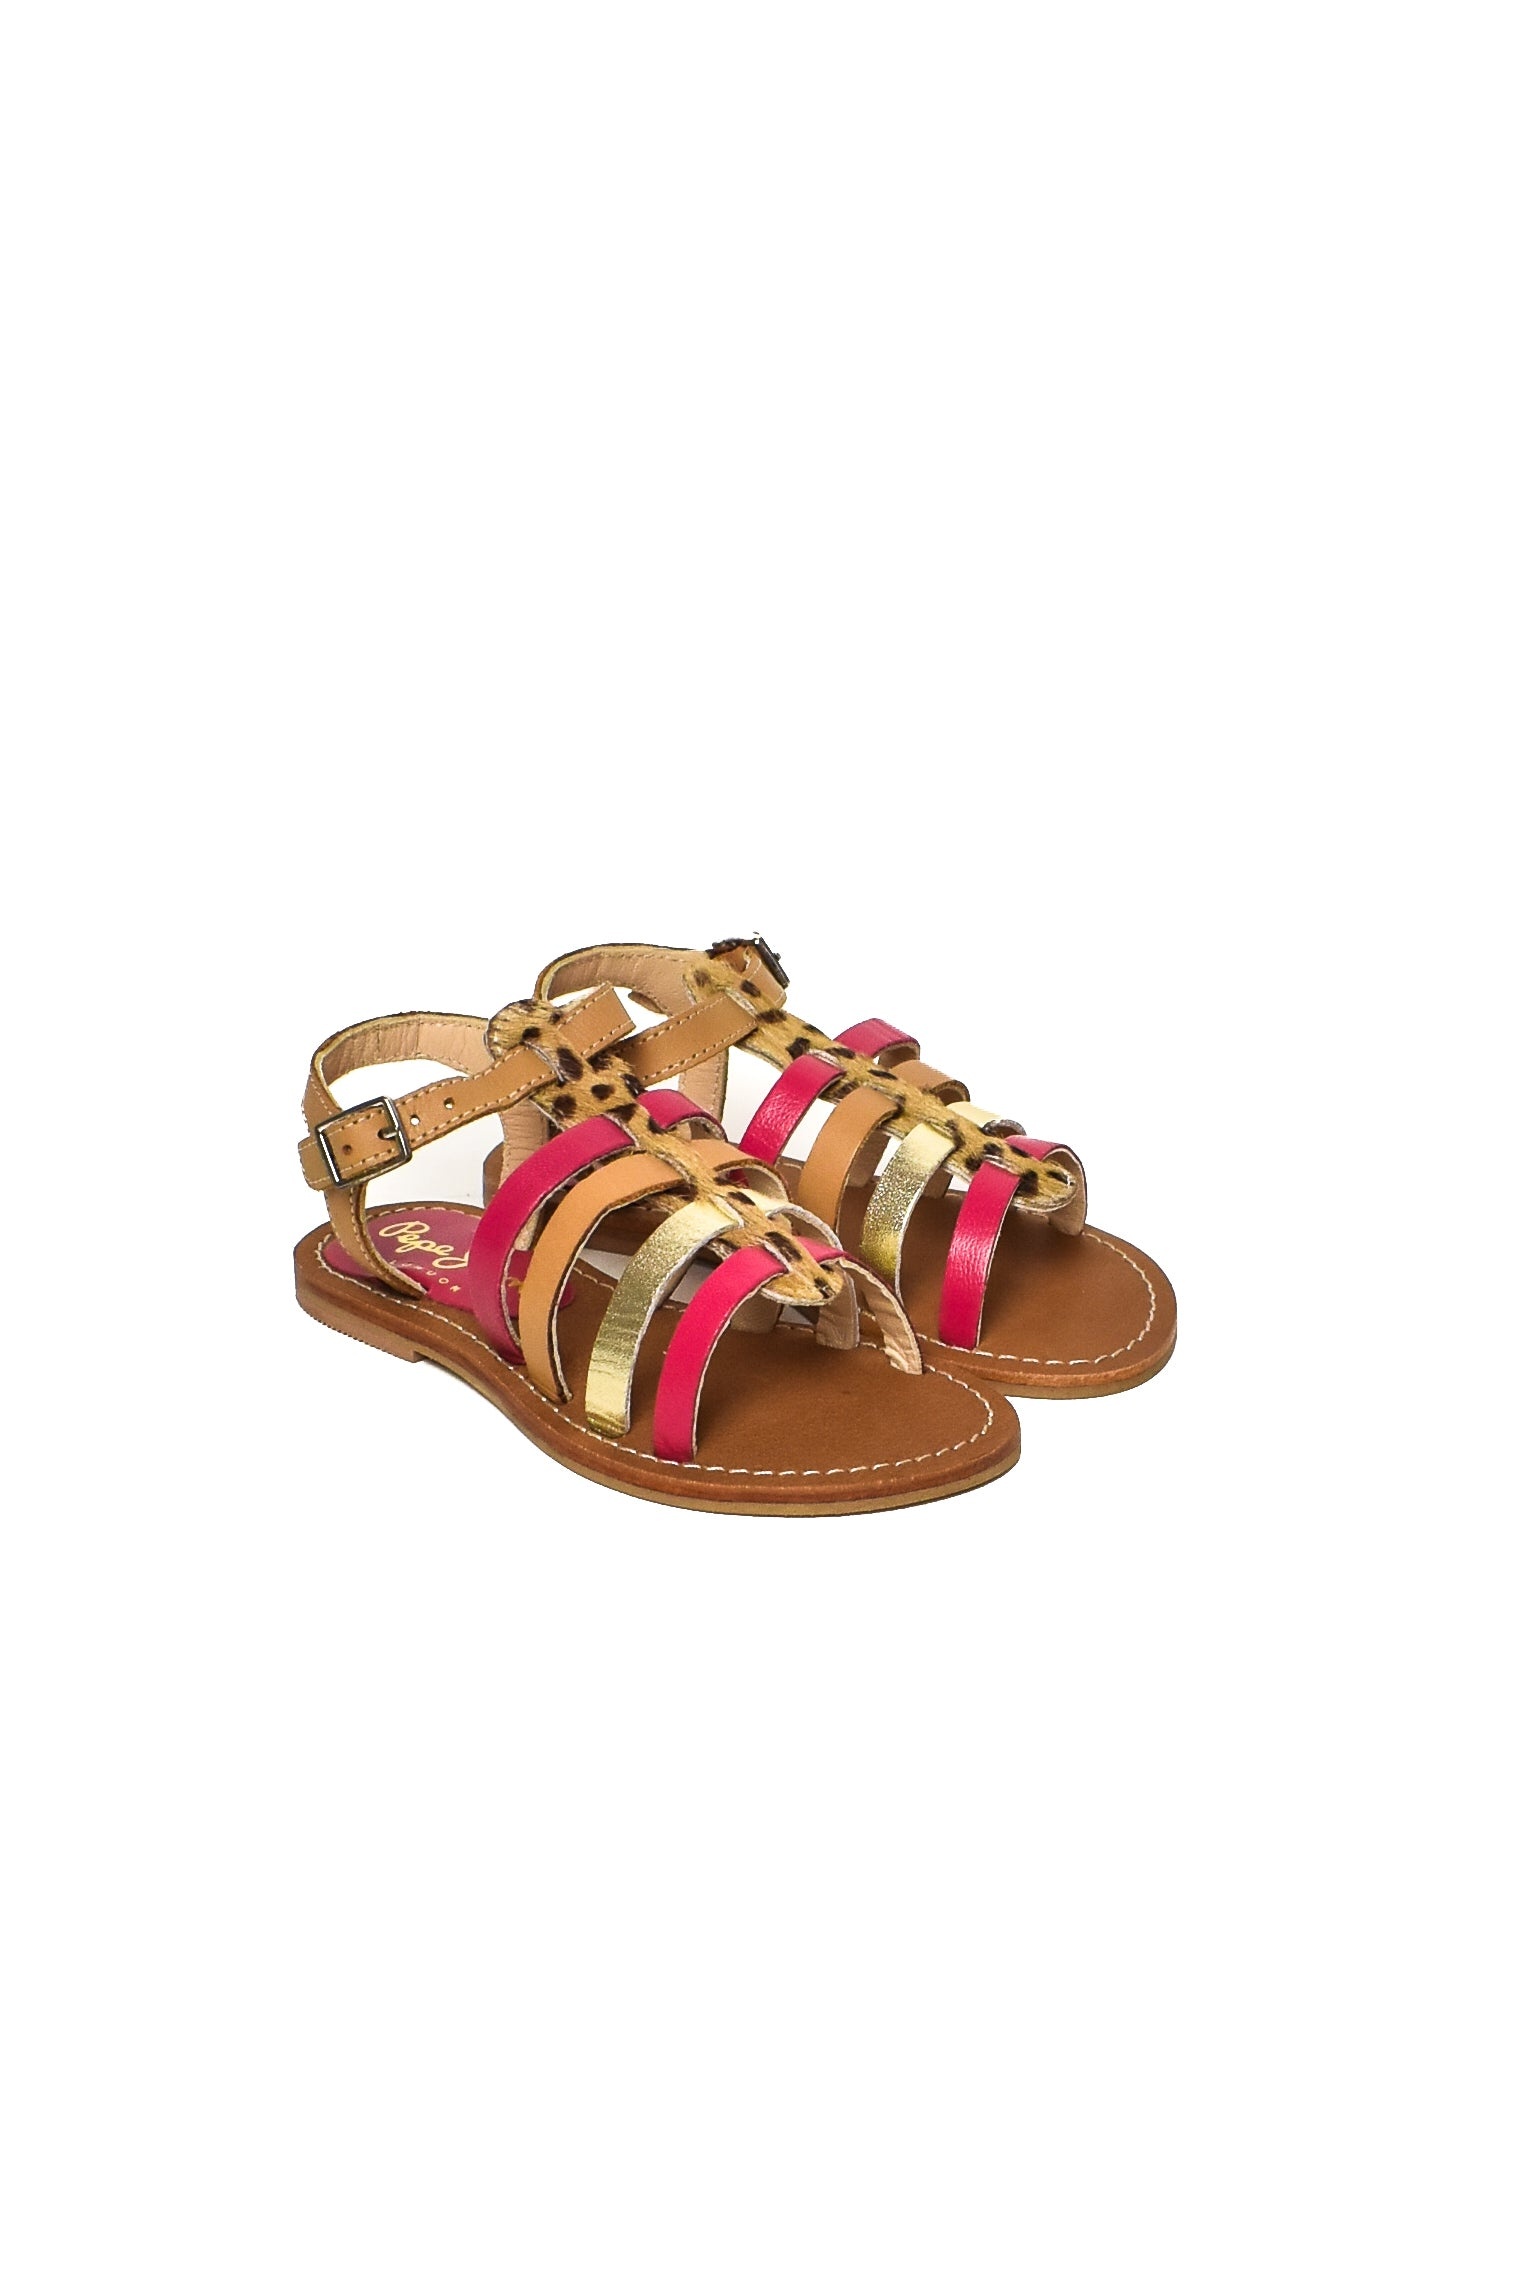 10007931 Pepe Jeans Kids~Sandals 3T (EU 25) at Retykle